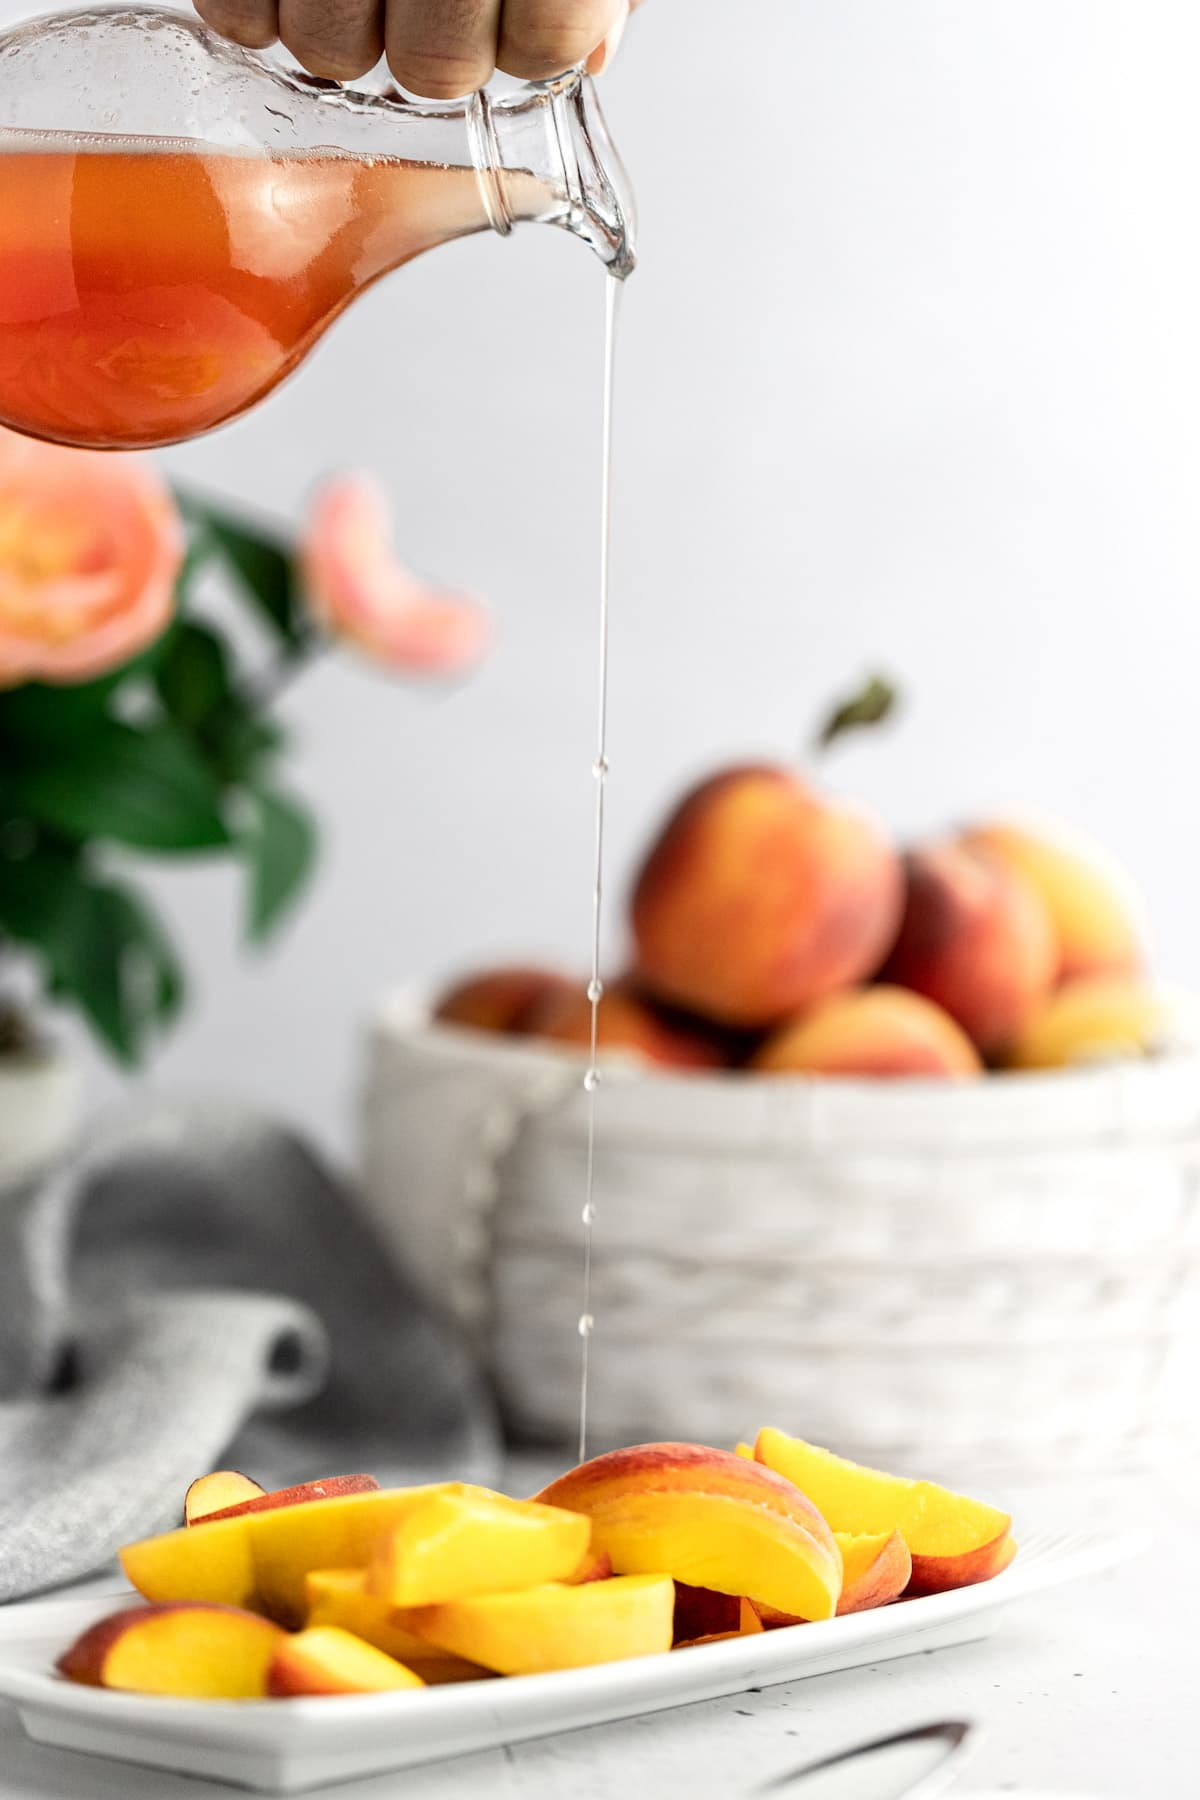 Syrup being poured over a plate of fresh peach slices, a grey napkin and basket of peaches in the background.